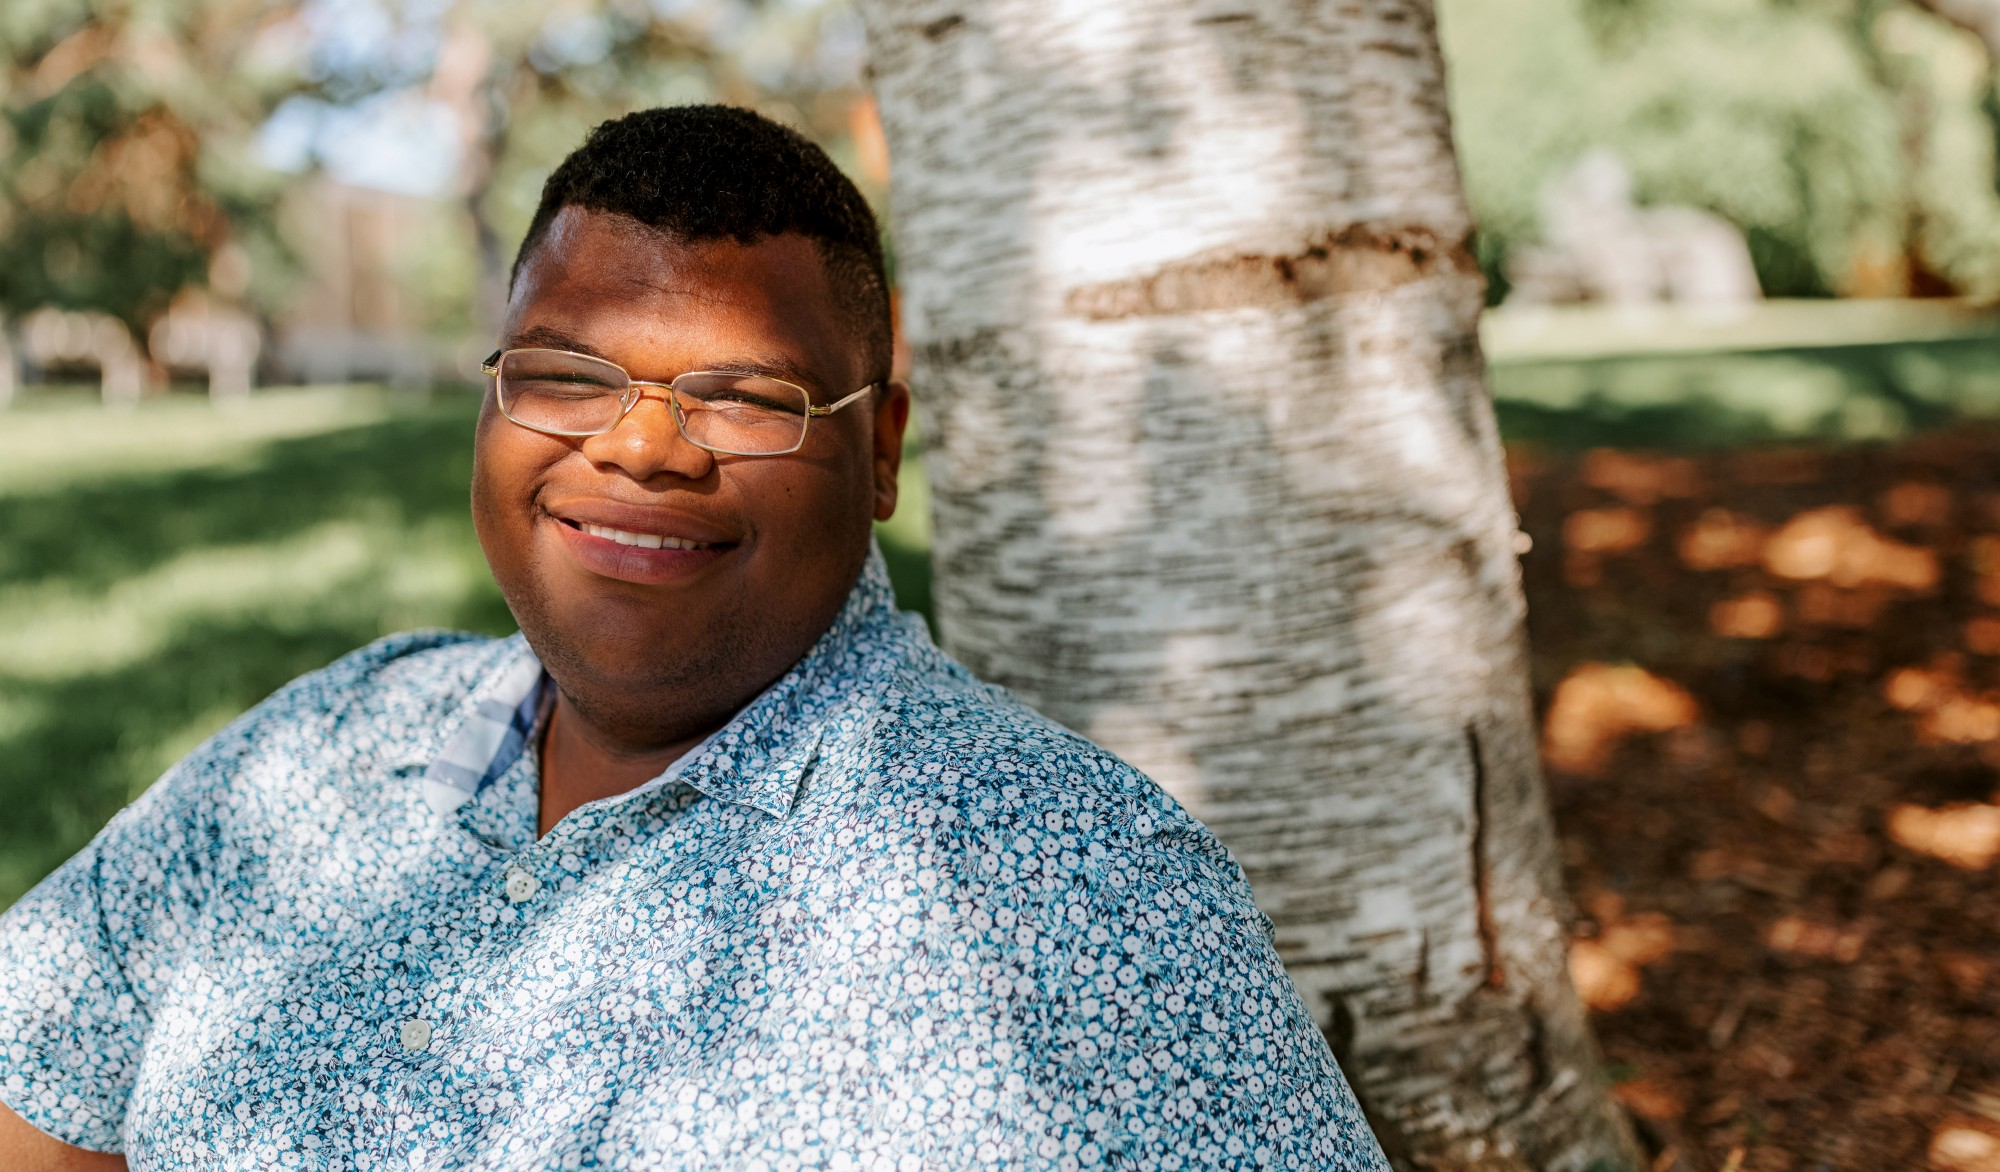 Jayven smiles as he rests in the shade against a tree